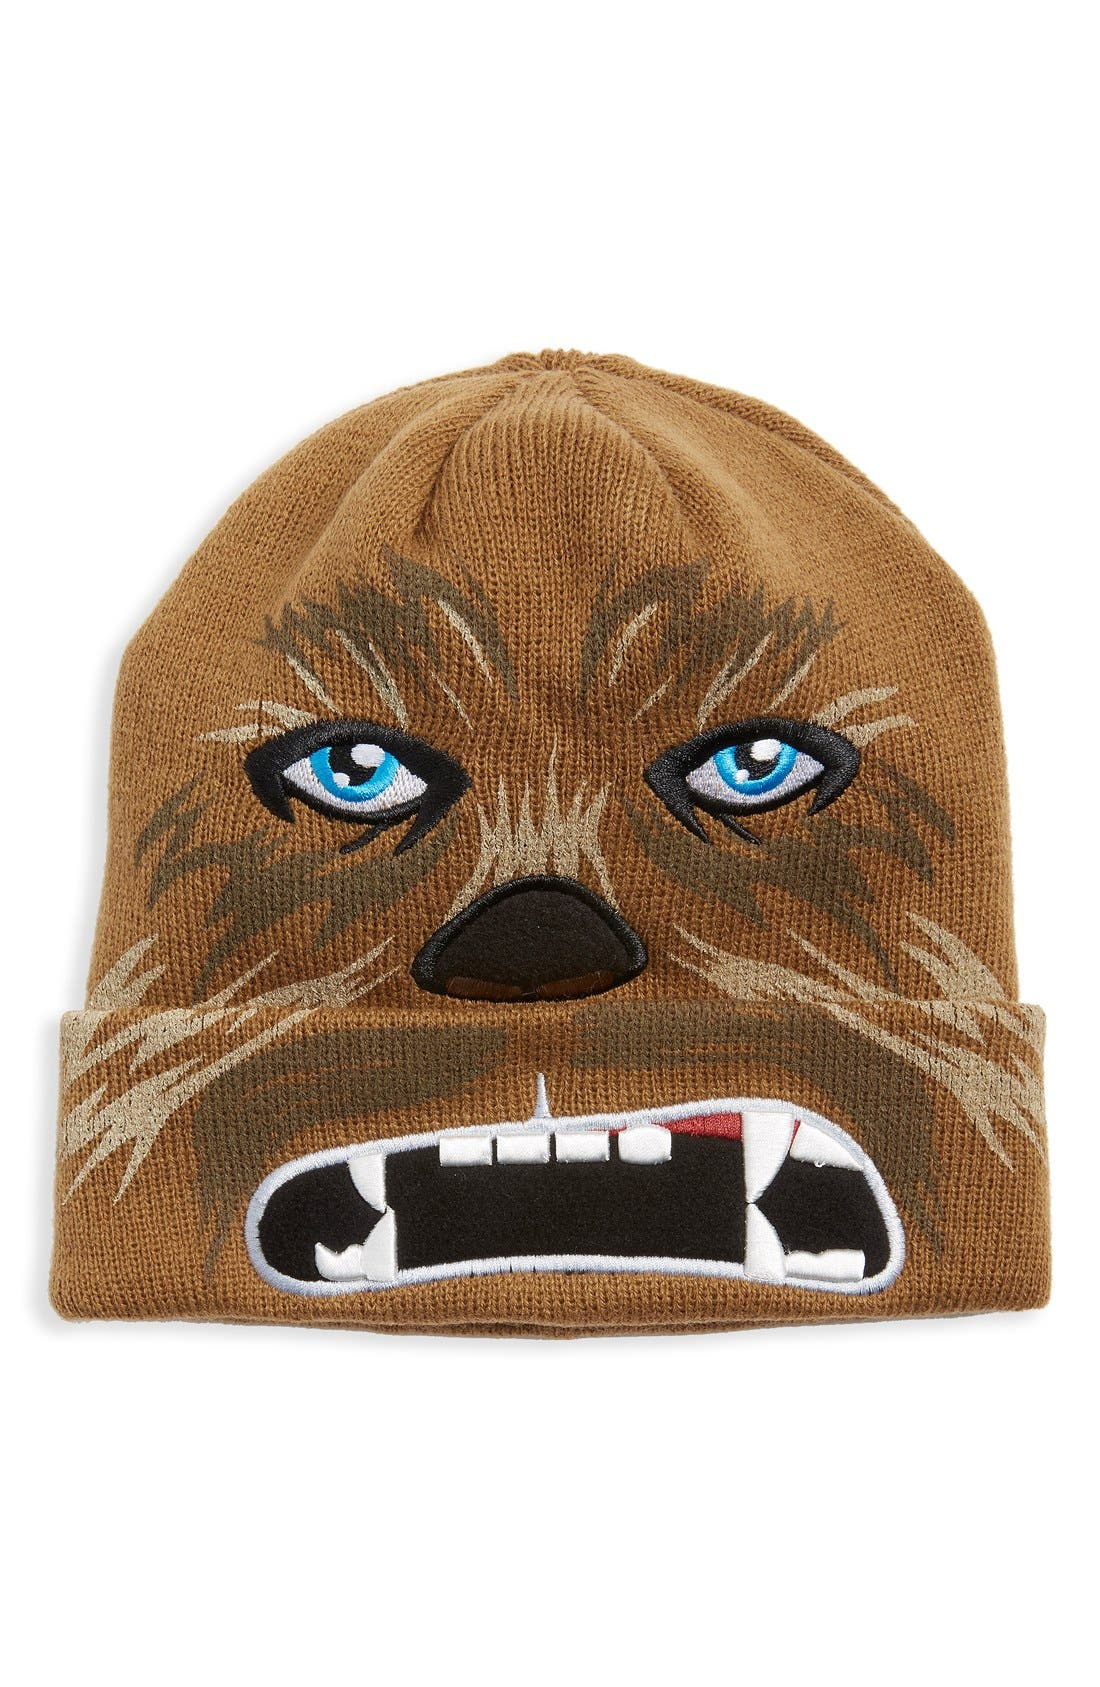 Alternate Image 1 Selected - Star Wars 'Chewbacca' Rib Knit Beanie (Big Boys)